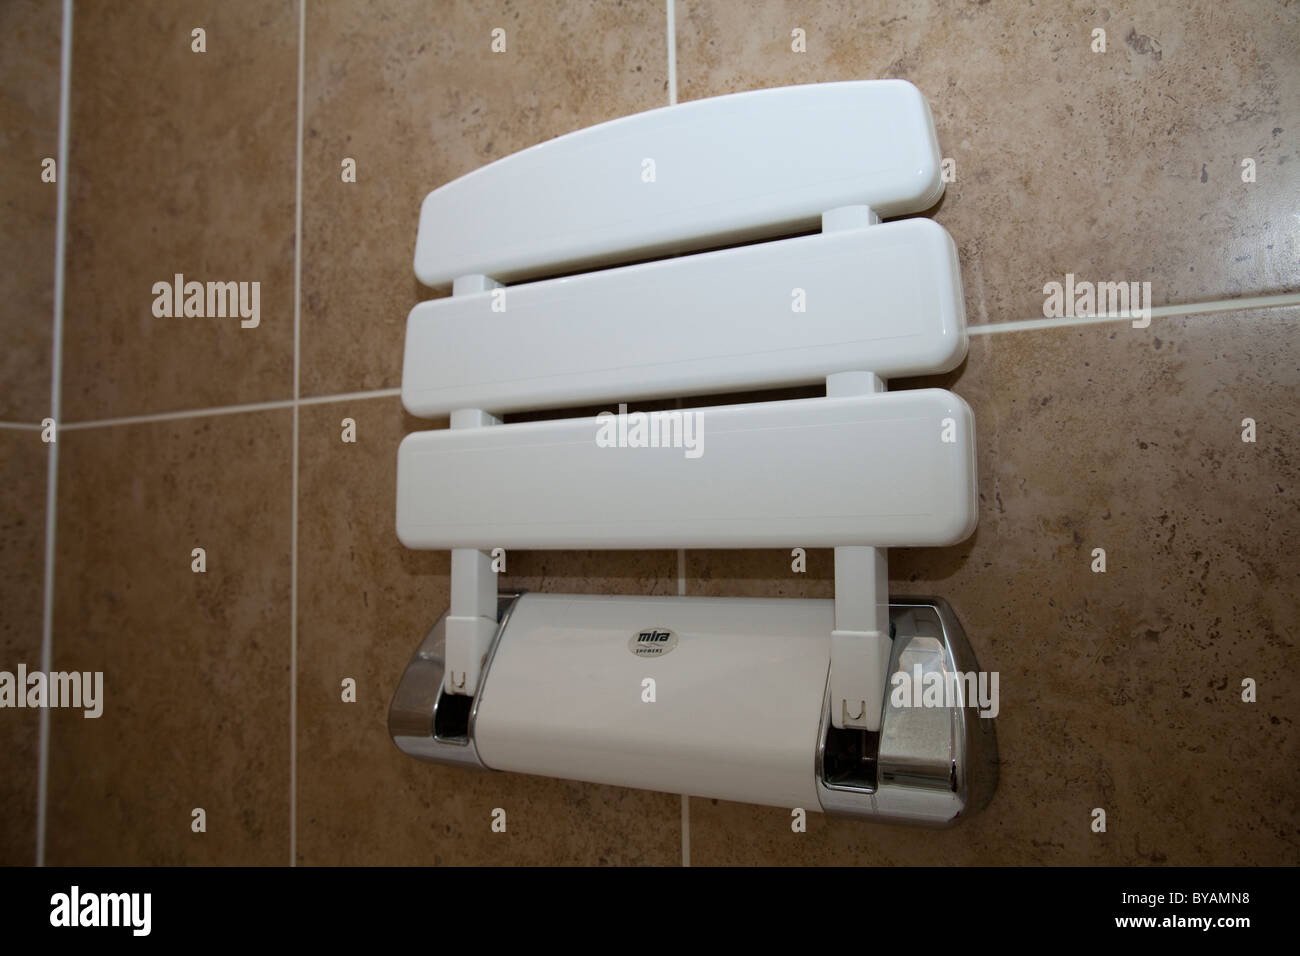 Shower Seat Stock Photos & Shower Seat Stock Images - Alamy